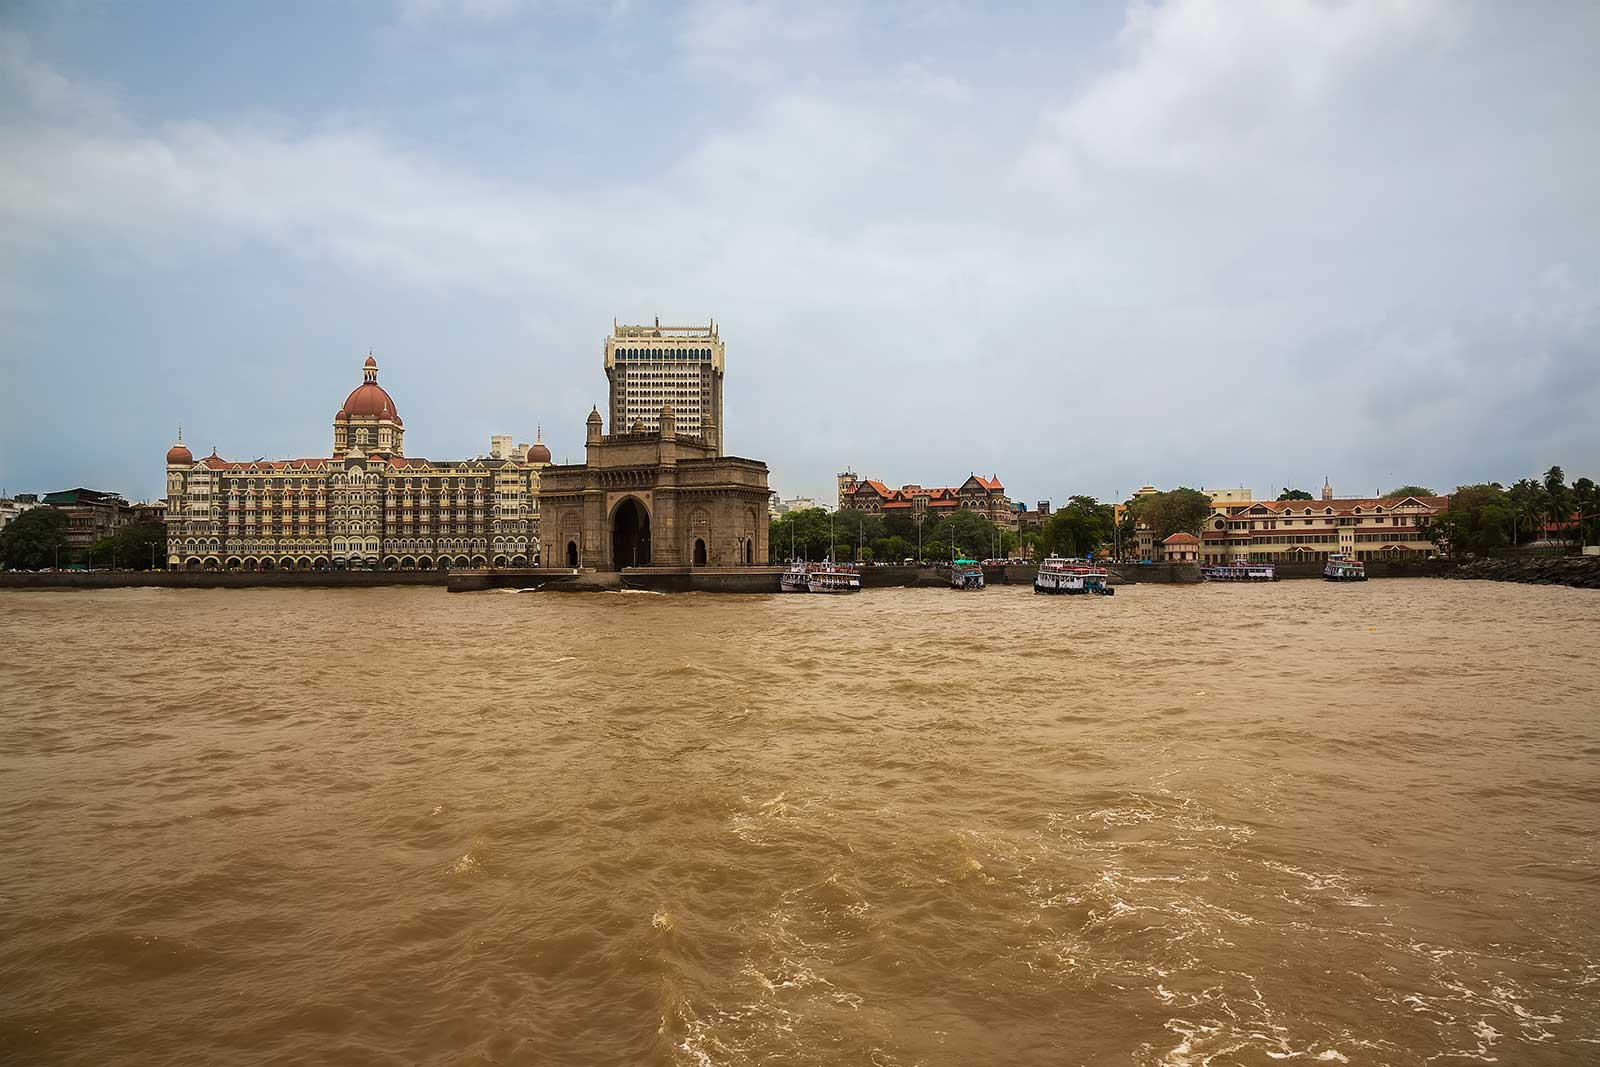 The Gateway of India, as well as the Taj Mahal Palace Hotel are two of the most iconic buildings in Mumbai, visited by thousands of tourists every day.